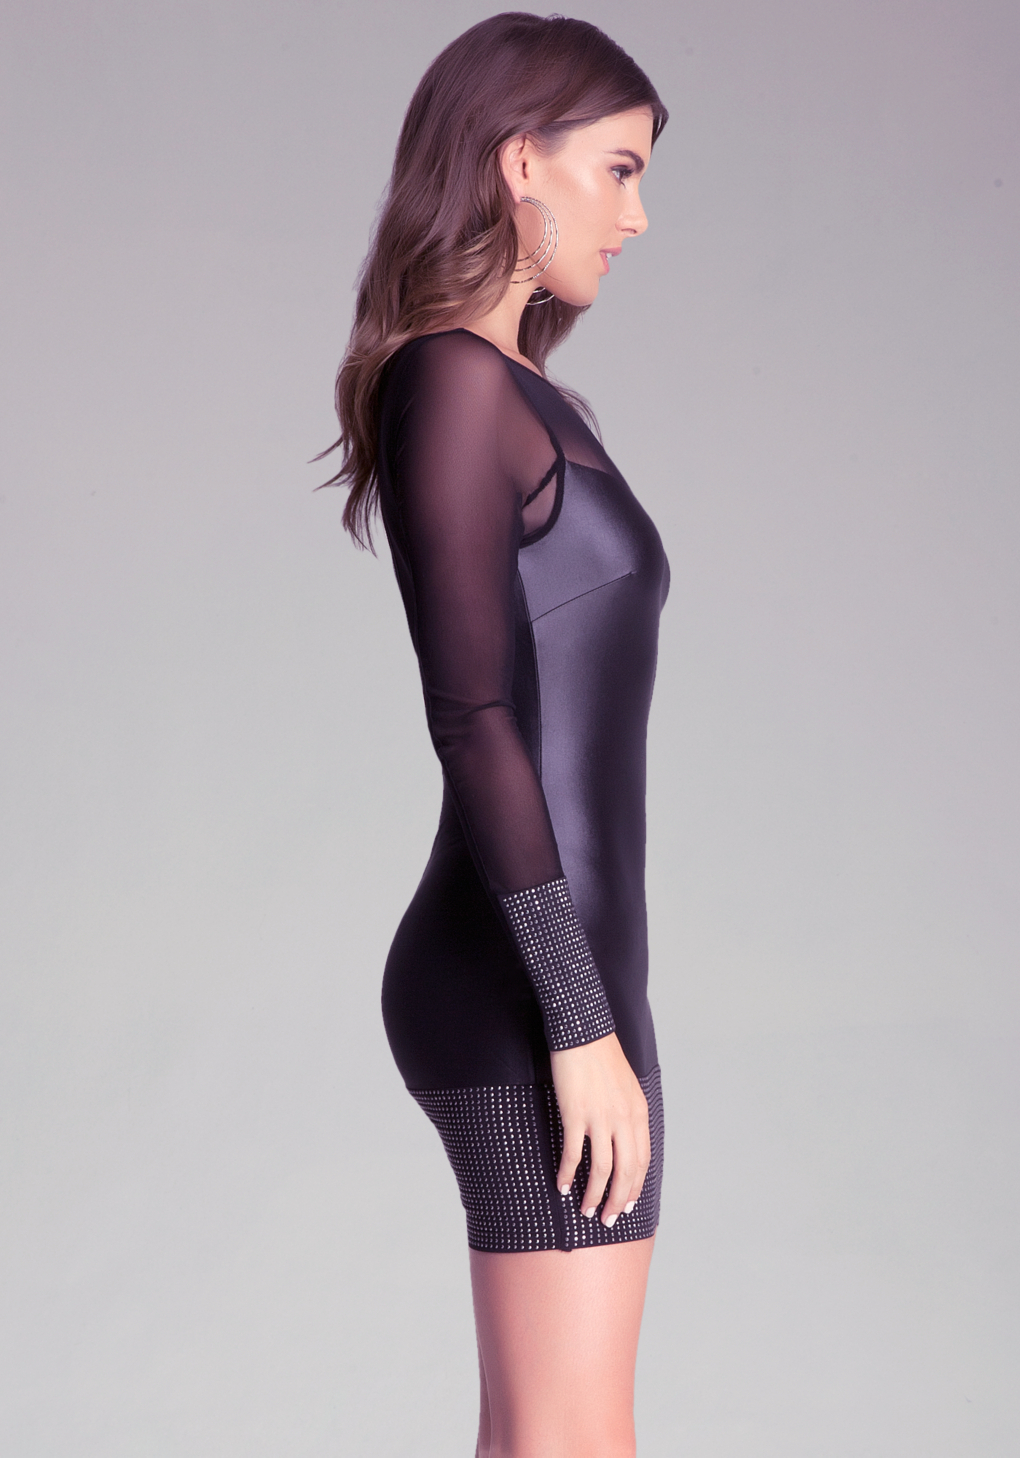 Lyst - Bebe Studded Band Coated Jersey Dress in Black - photo #10